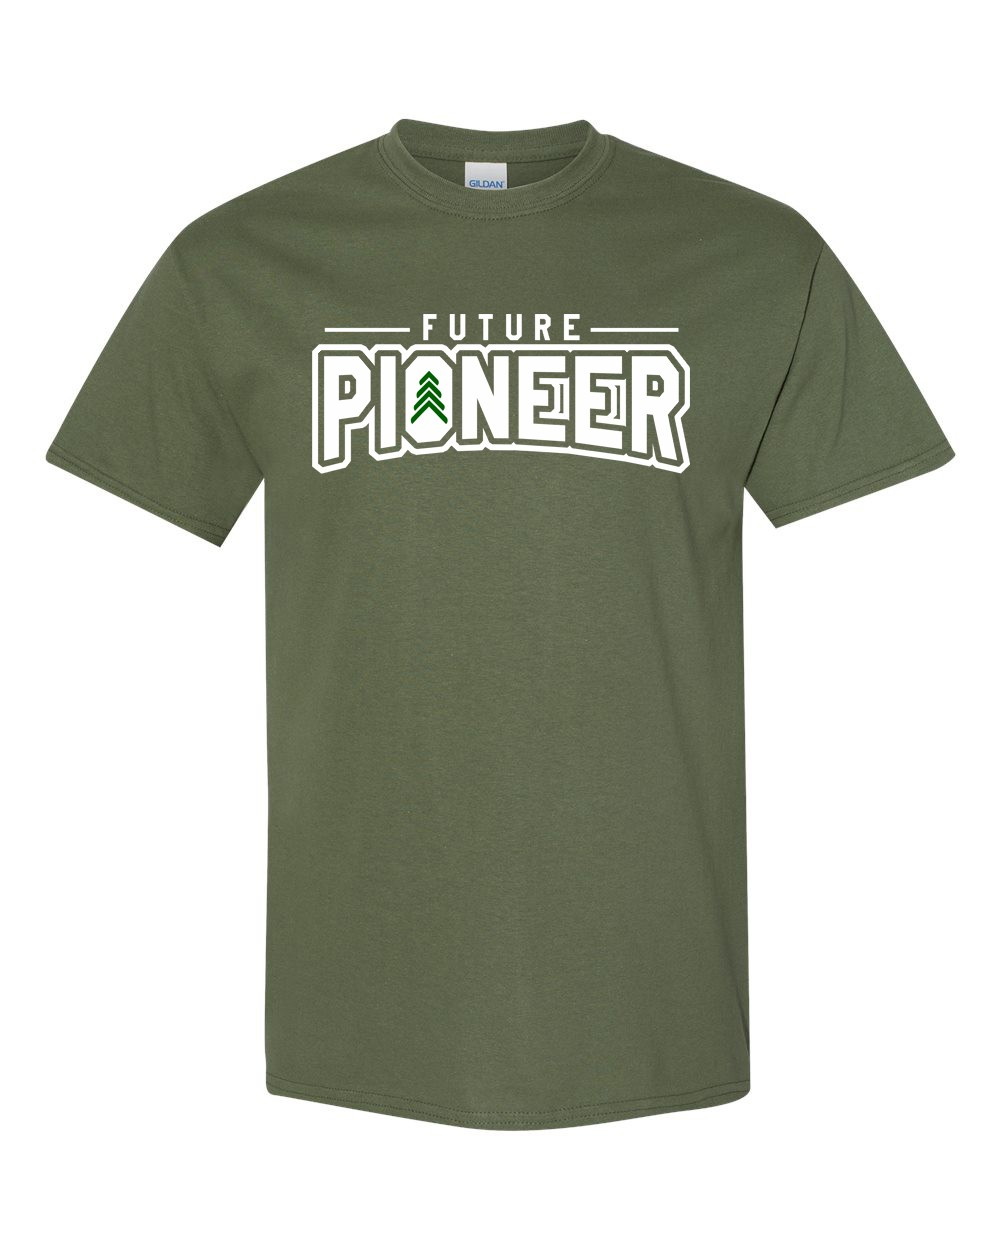 Future Pioneer 100% Cotton Toddler Tees